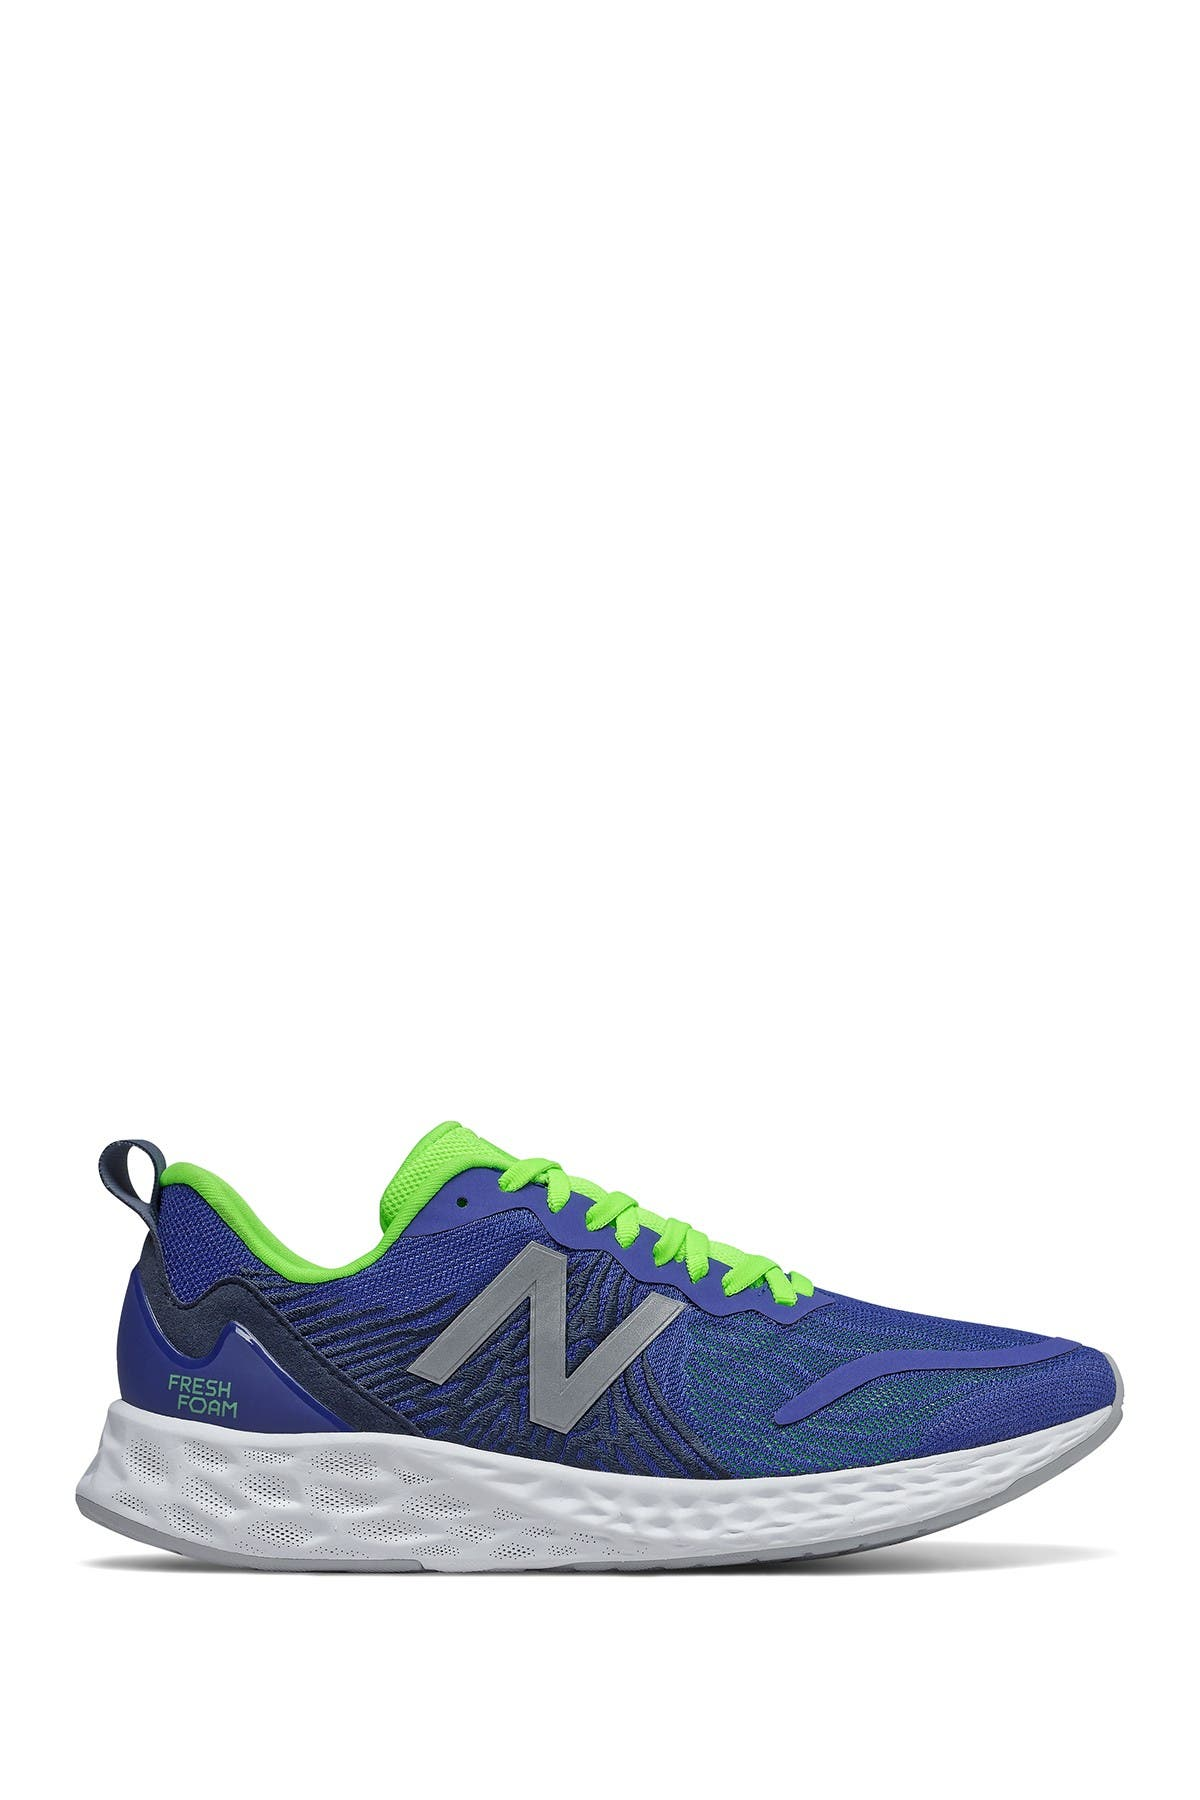 Image of New Balance Tempo Running Sneaker - Wide Width